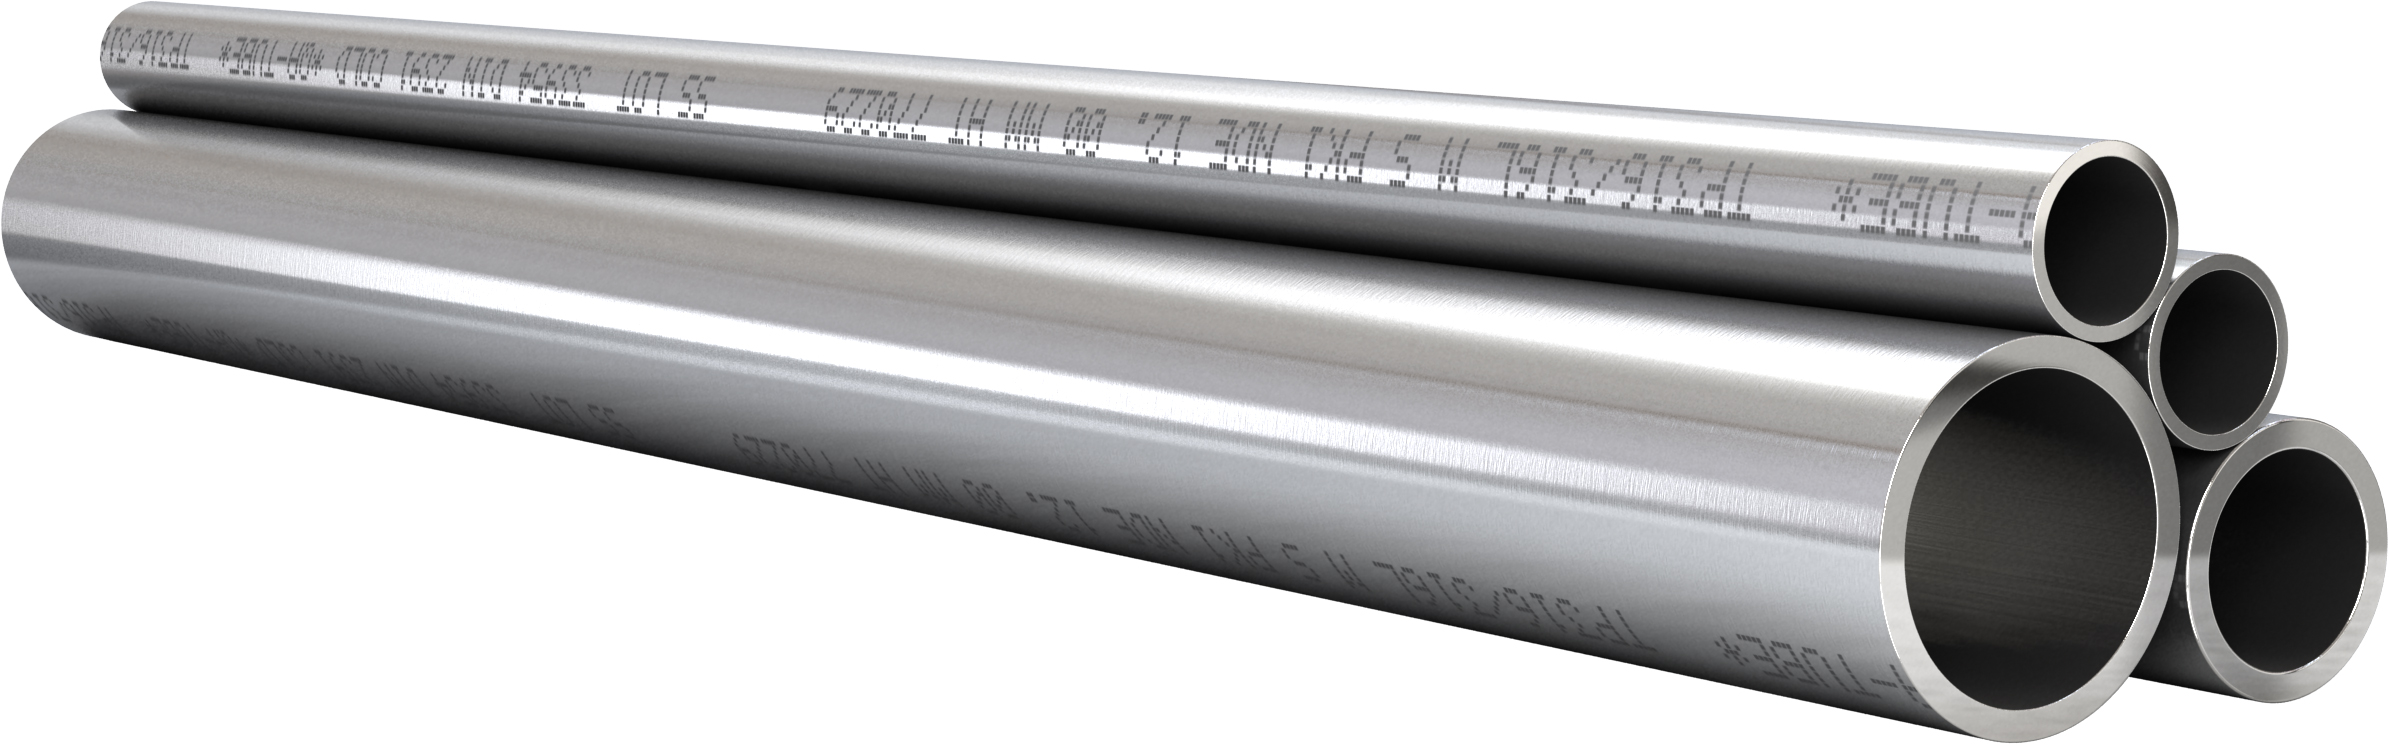 Coiled Tubing Sizes : Stainless steel coiled tubing — sandvik materials technology